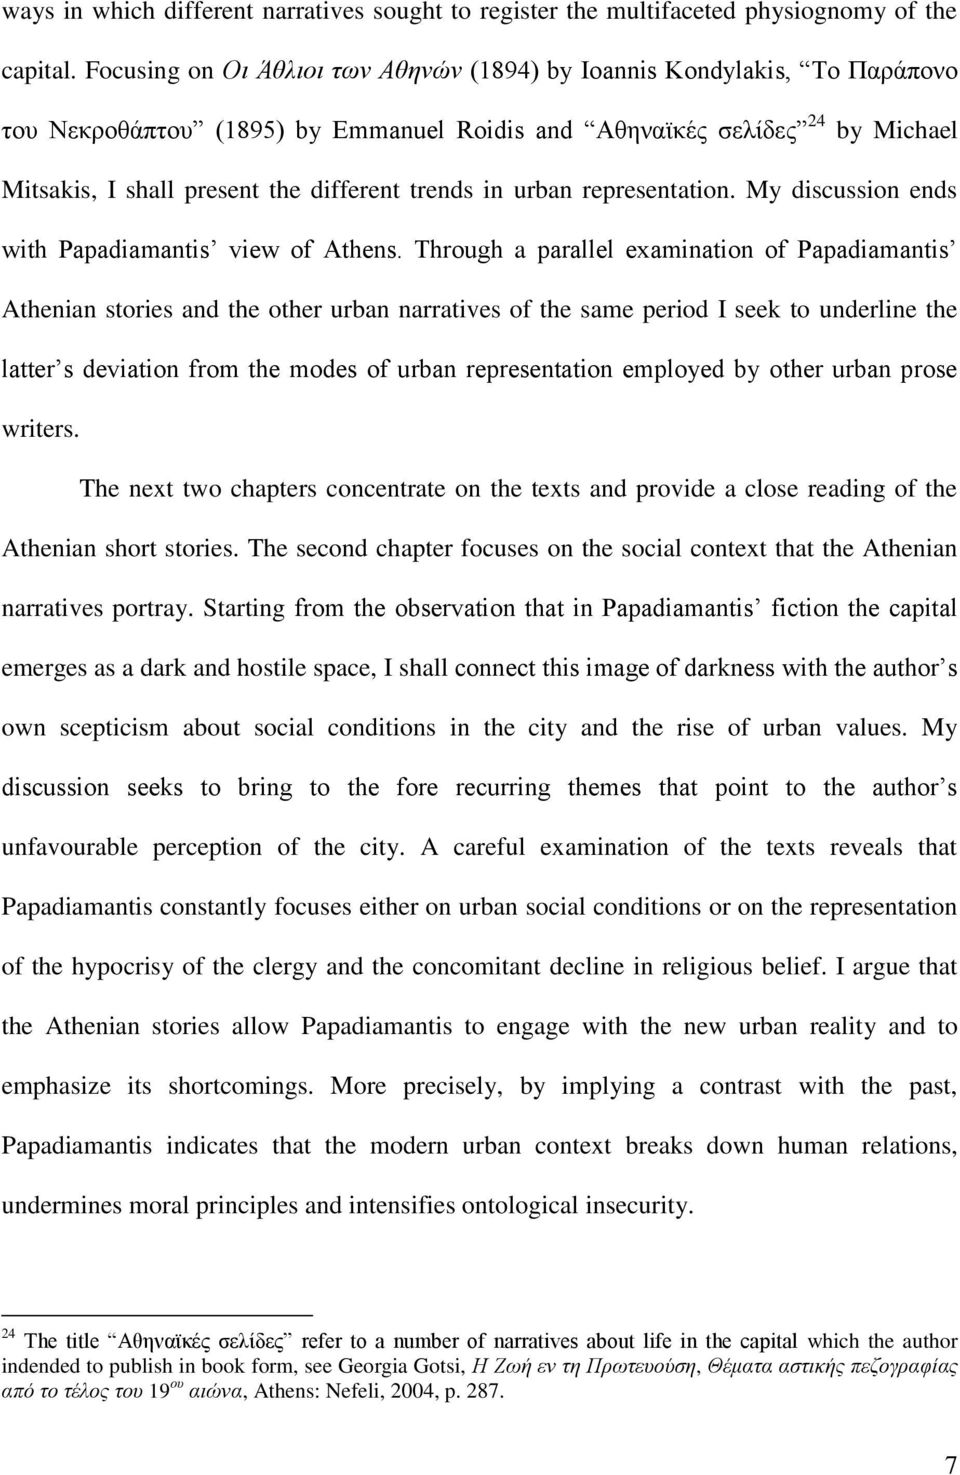 in urban representation. My discussion ends with Papadiamantis view of Athens.